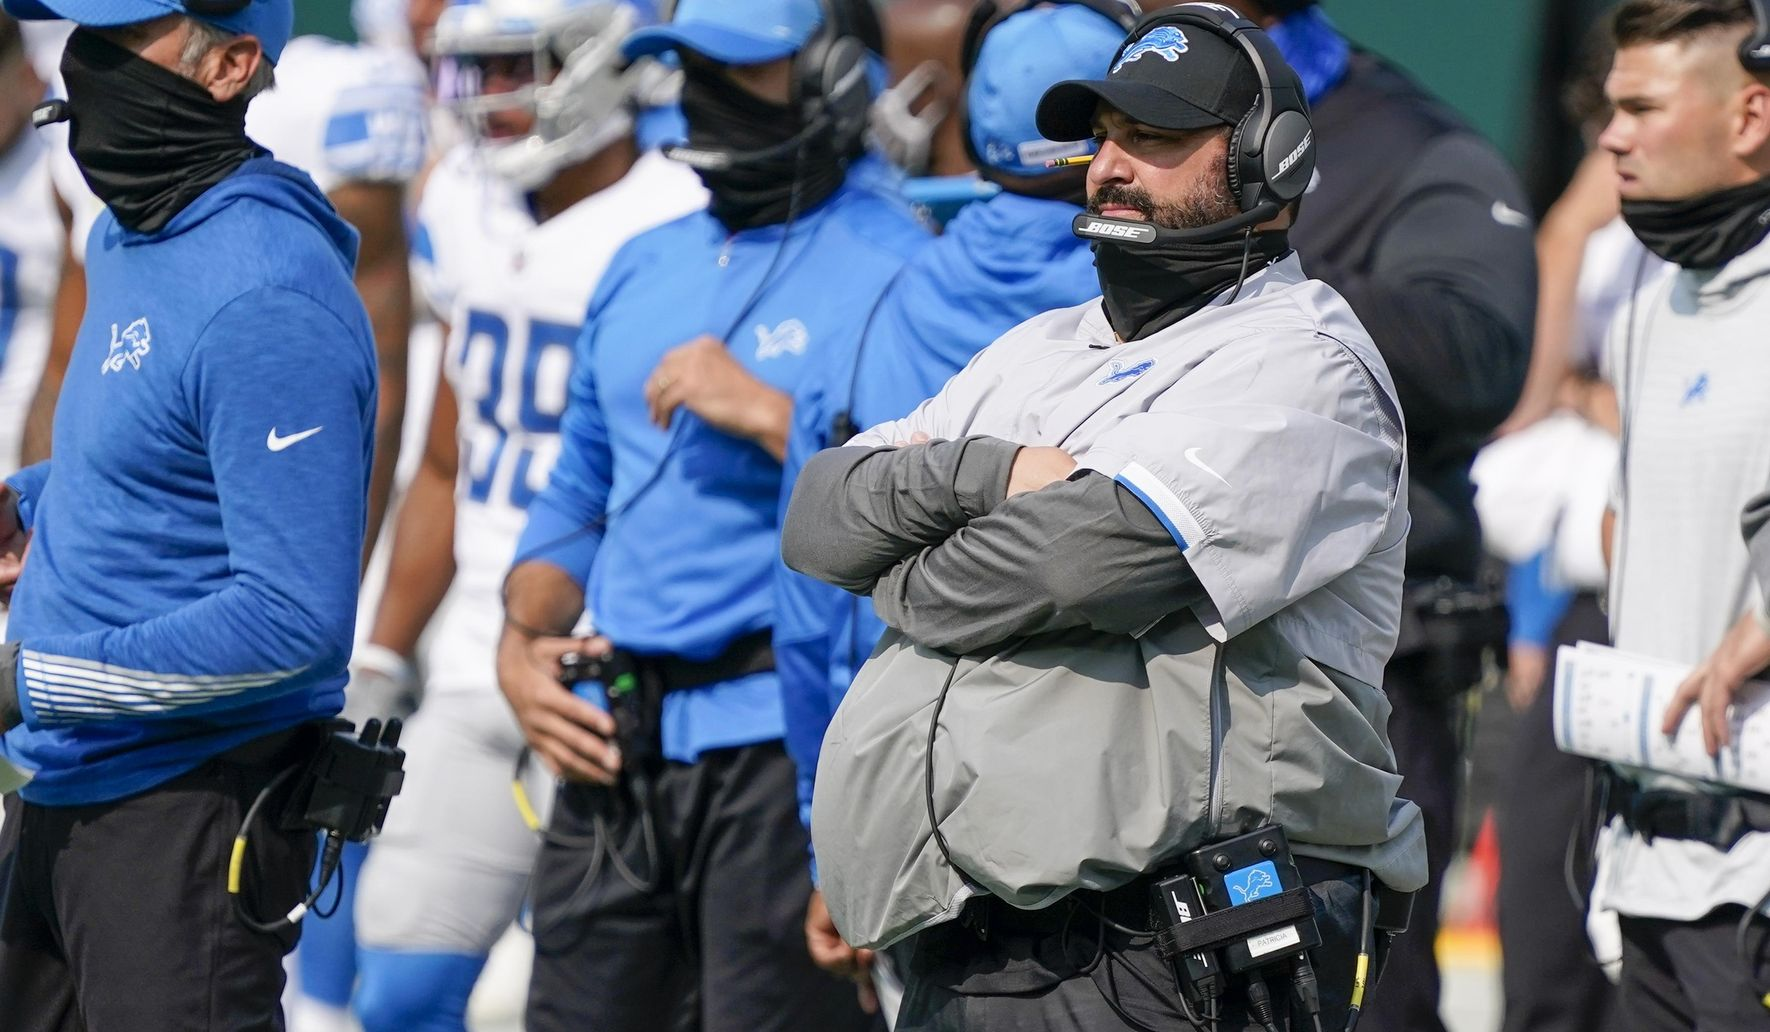 Lions_packers_football_17612_c0-151-3584-2240_s1770x1032